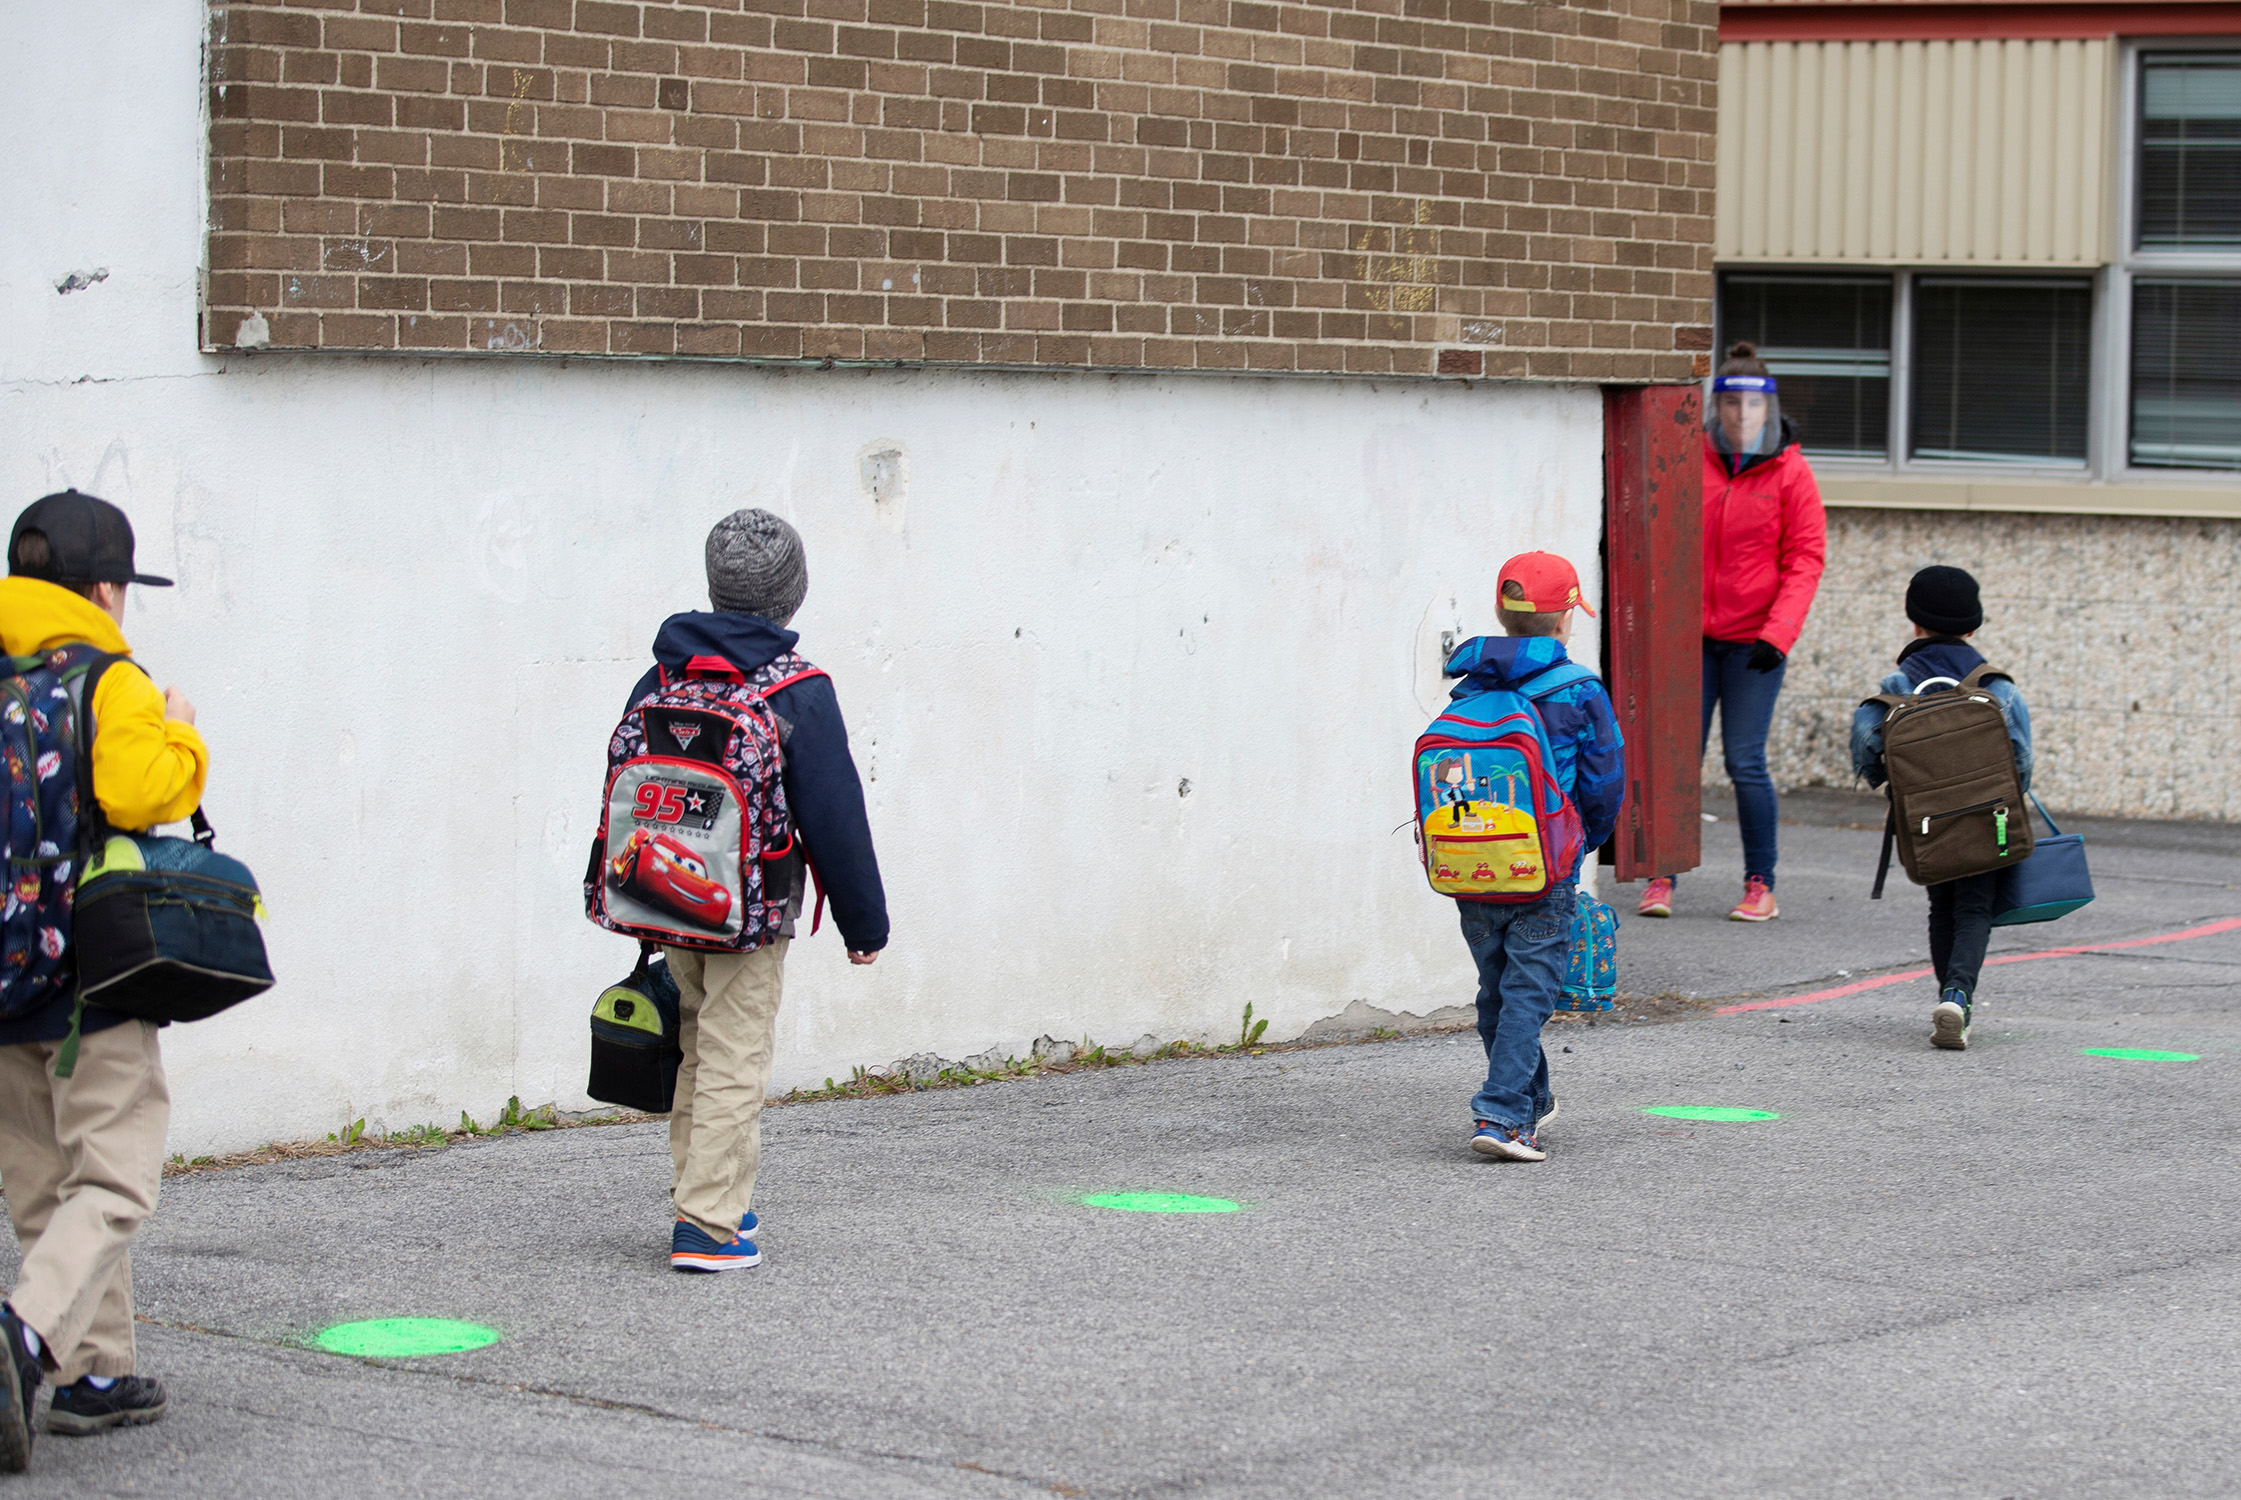 Children in Saint-Jean-sur-Richelieu, Que., use green dots painted on the tarmac to help maintain proper social distancing; schools outside the greater Montreal area began to reopen in mid-May as the COVID-19 pandemic wore on, and children were asked to adapt to new realities (Christinne Muschi/Reuters)